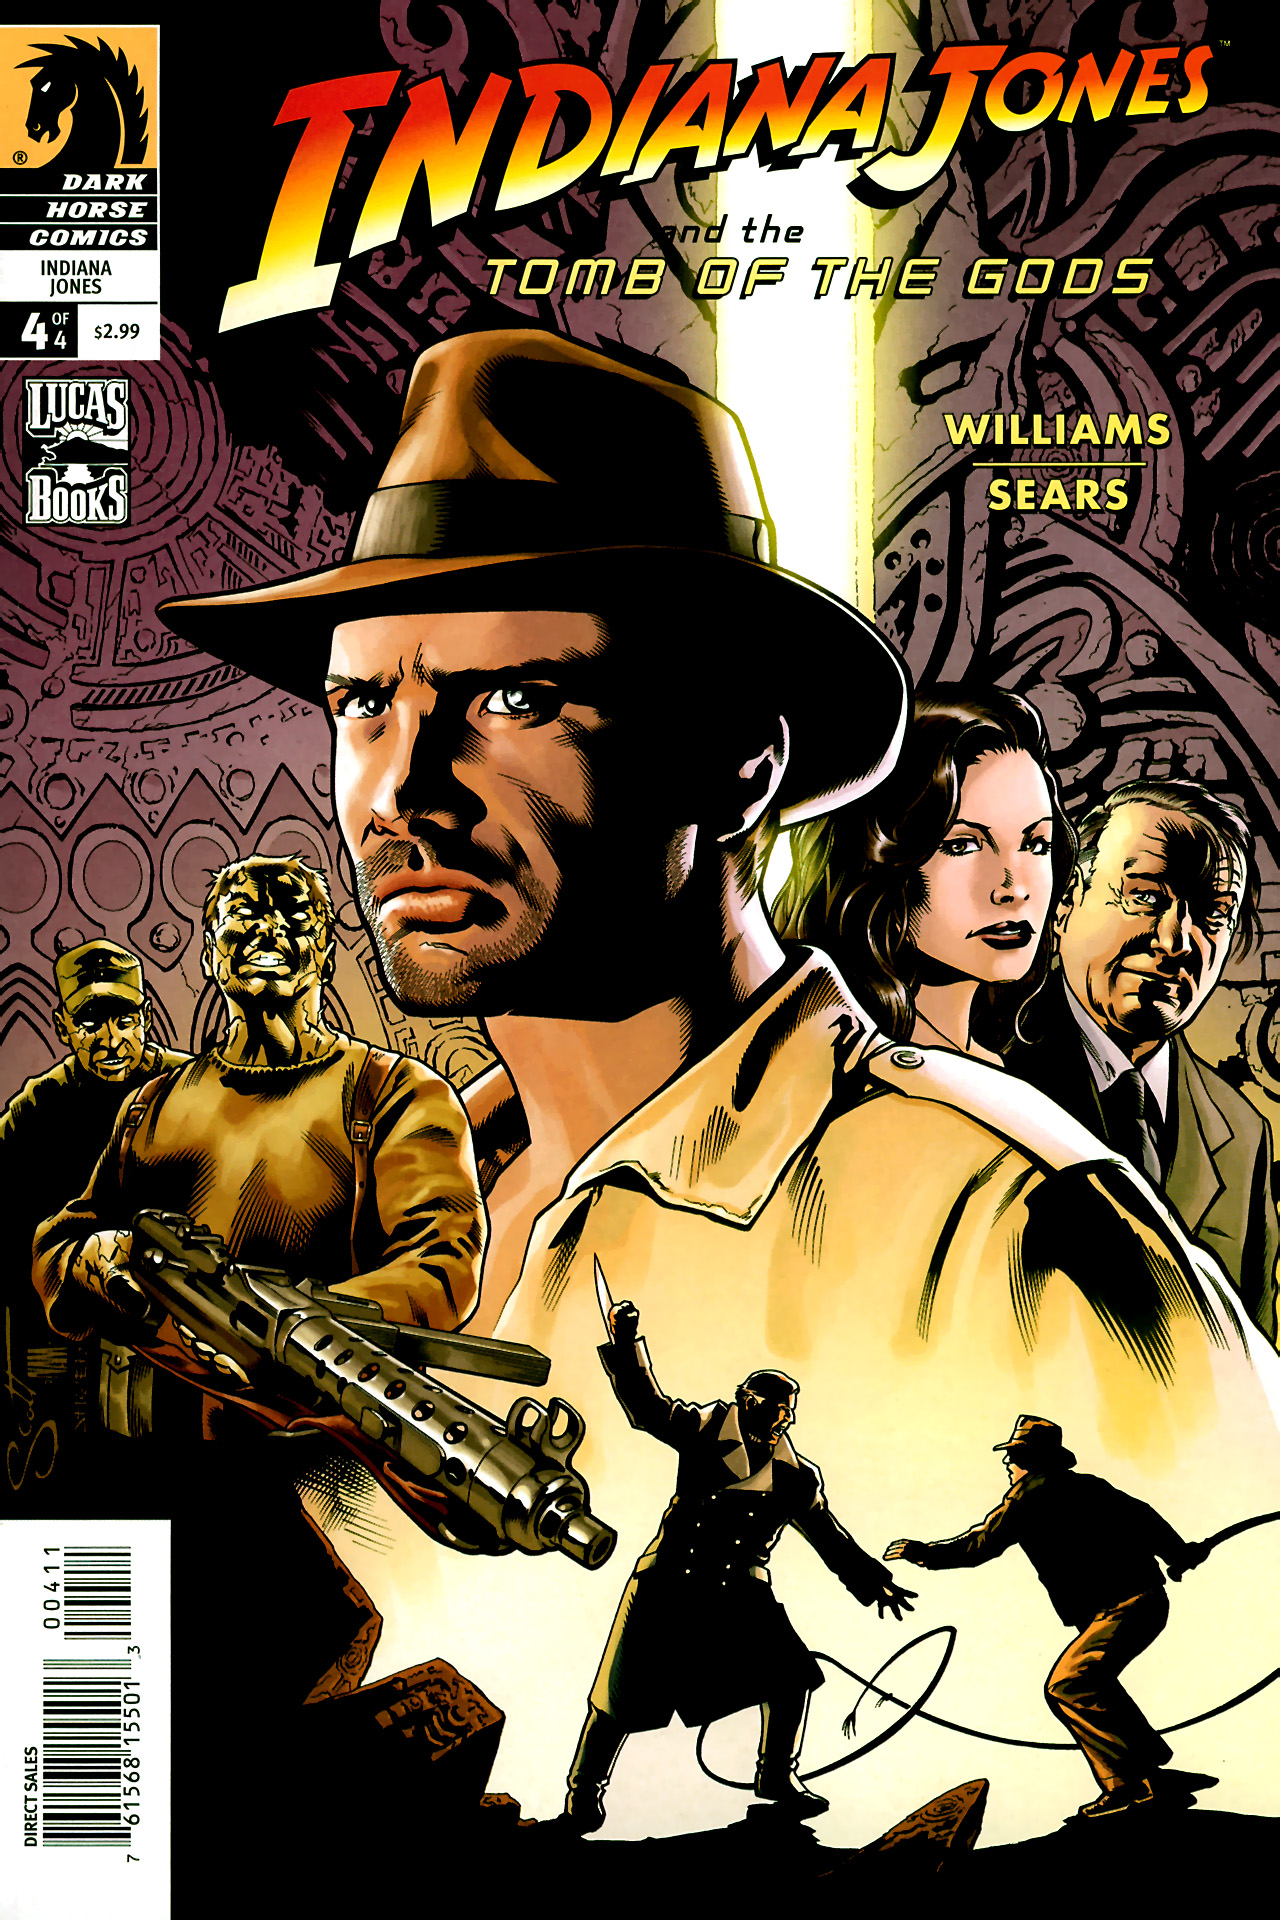 Indiana Jones and the Tomb of the Gods 0004.jpg